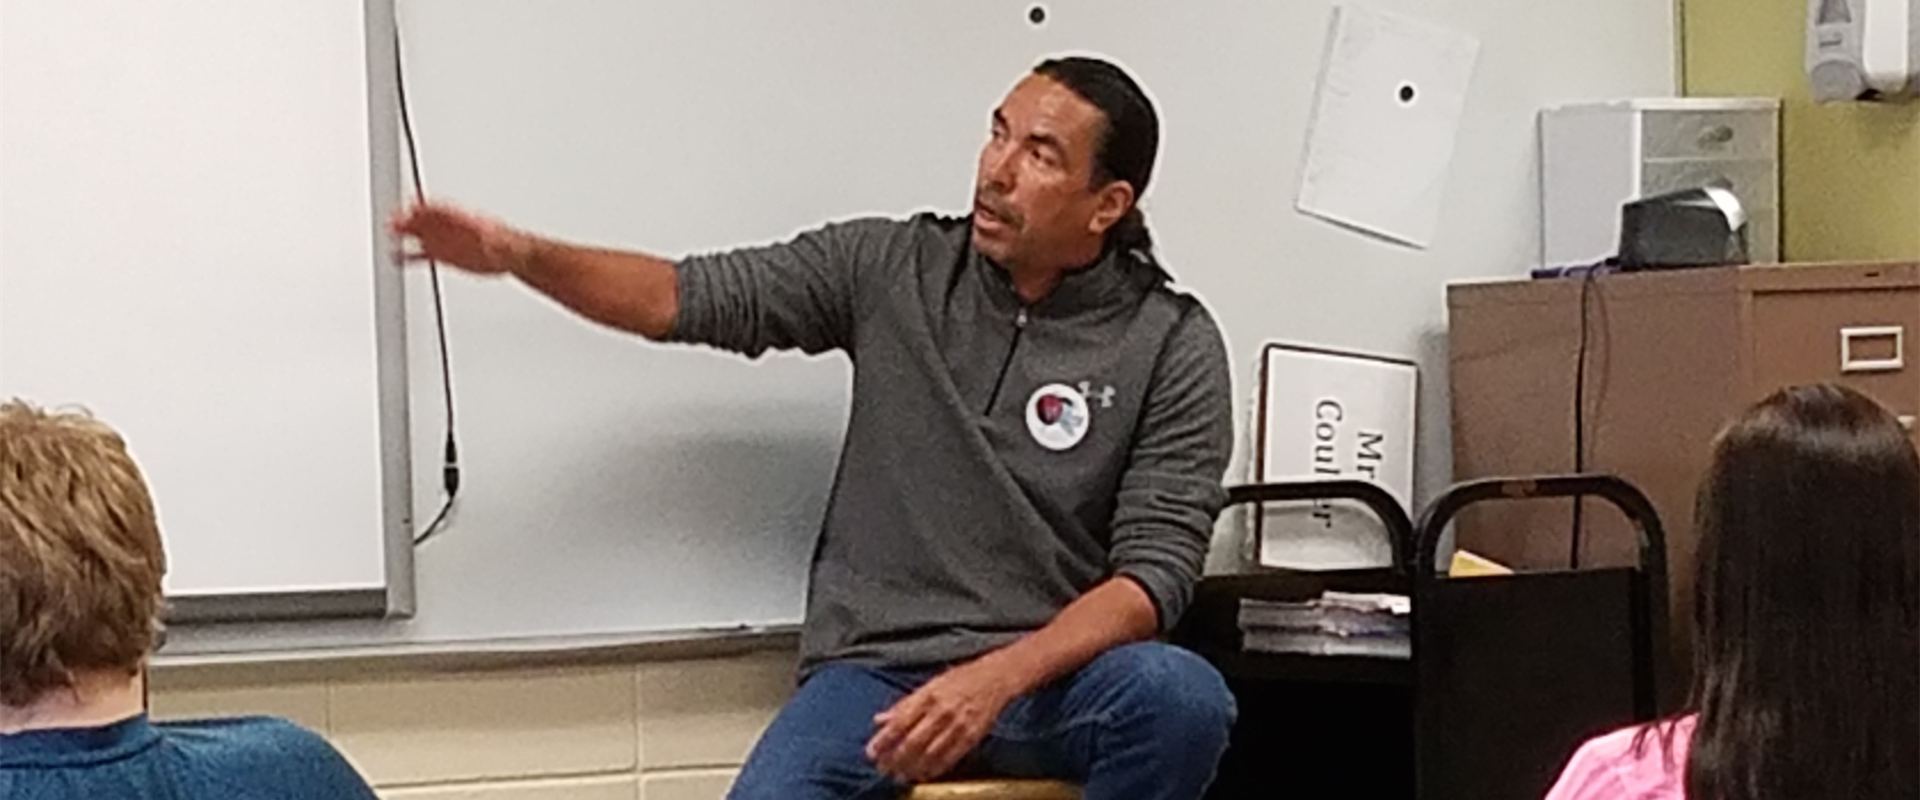 Kevin Jensvold spoke to Mr. Weidauer's Civics classes on Dakota government both past and present. His presentation was very informative and interesting.